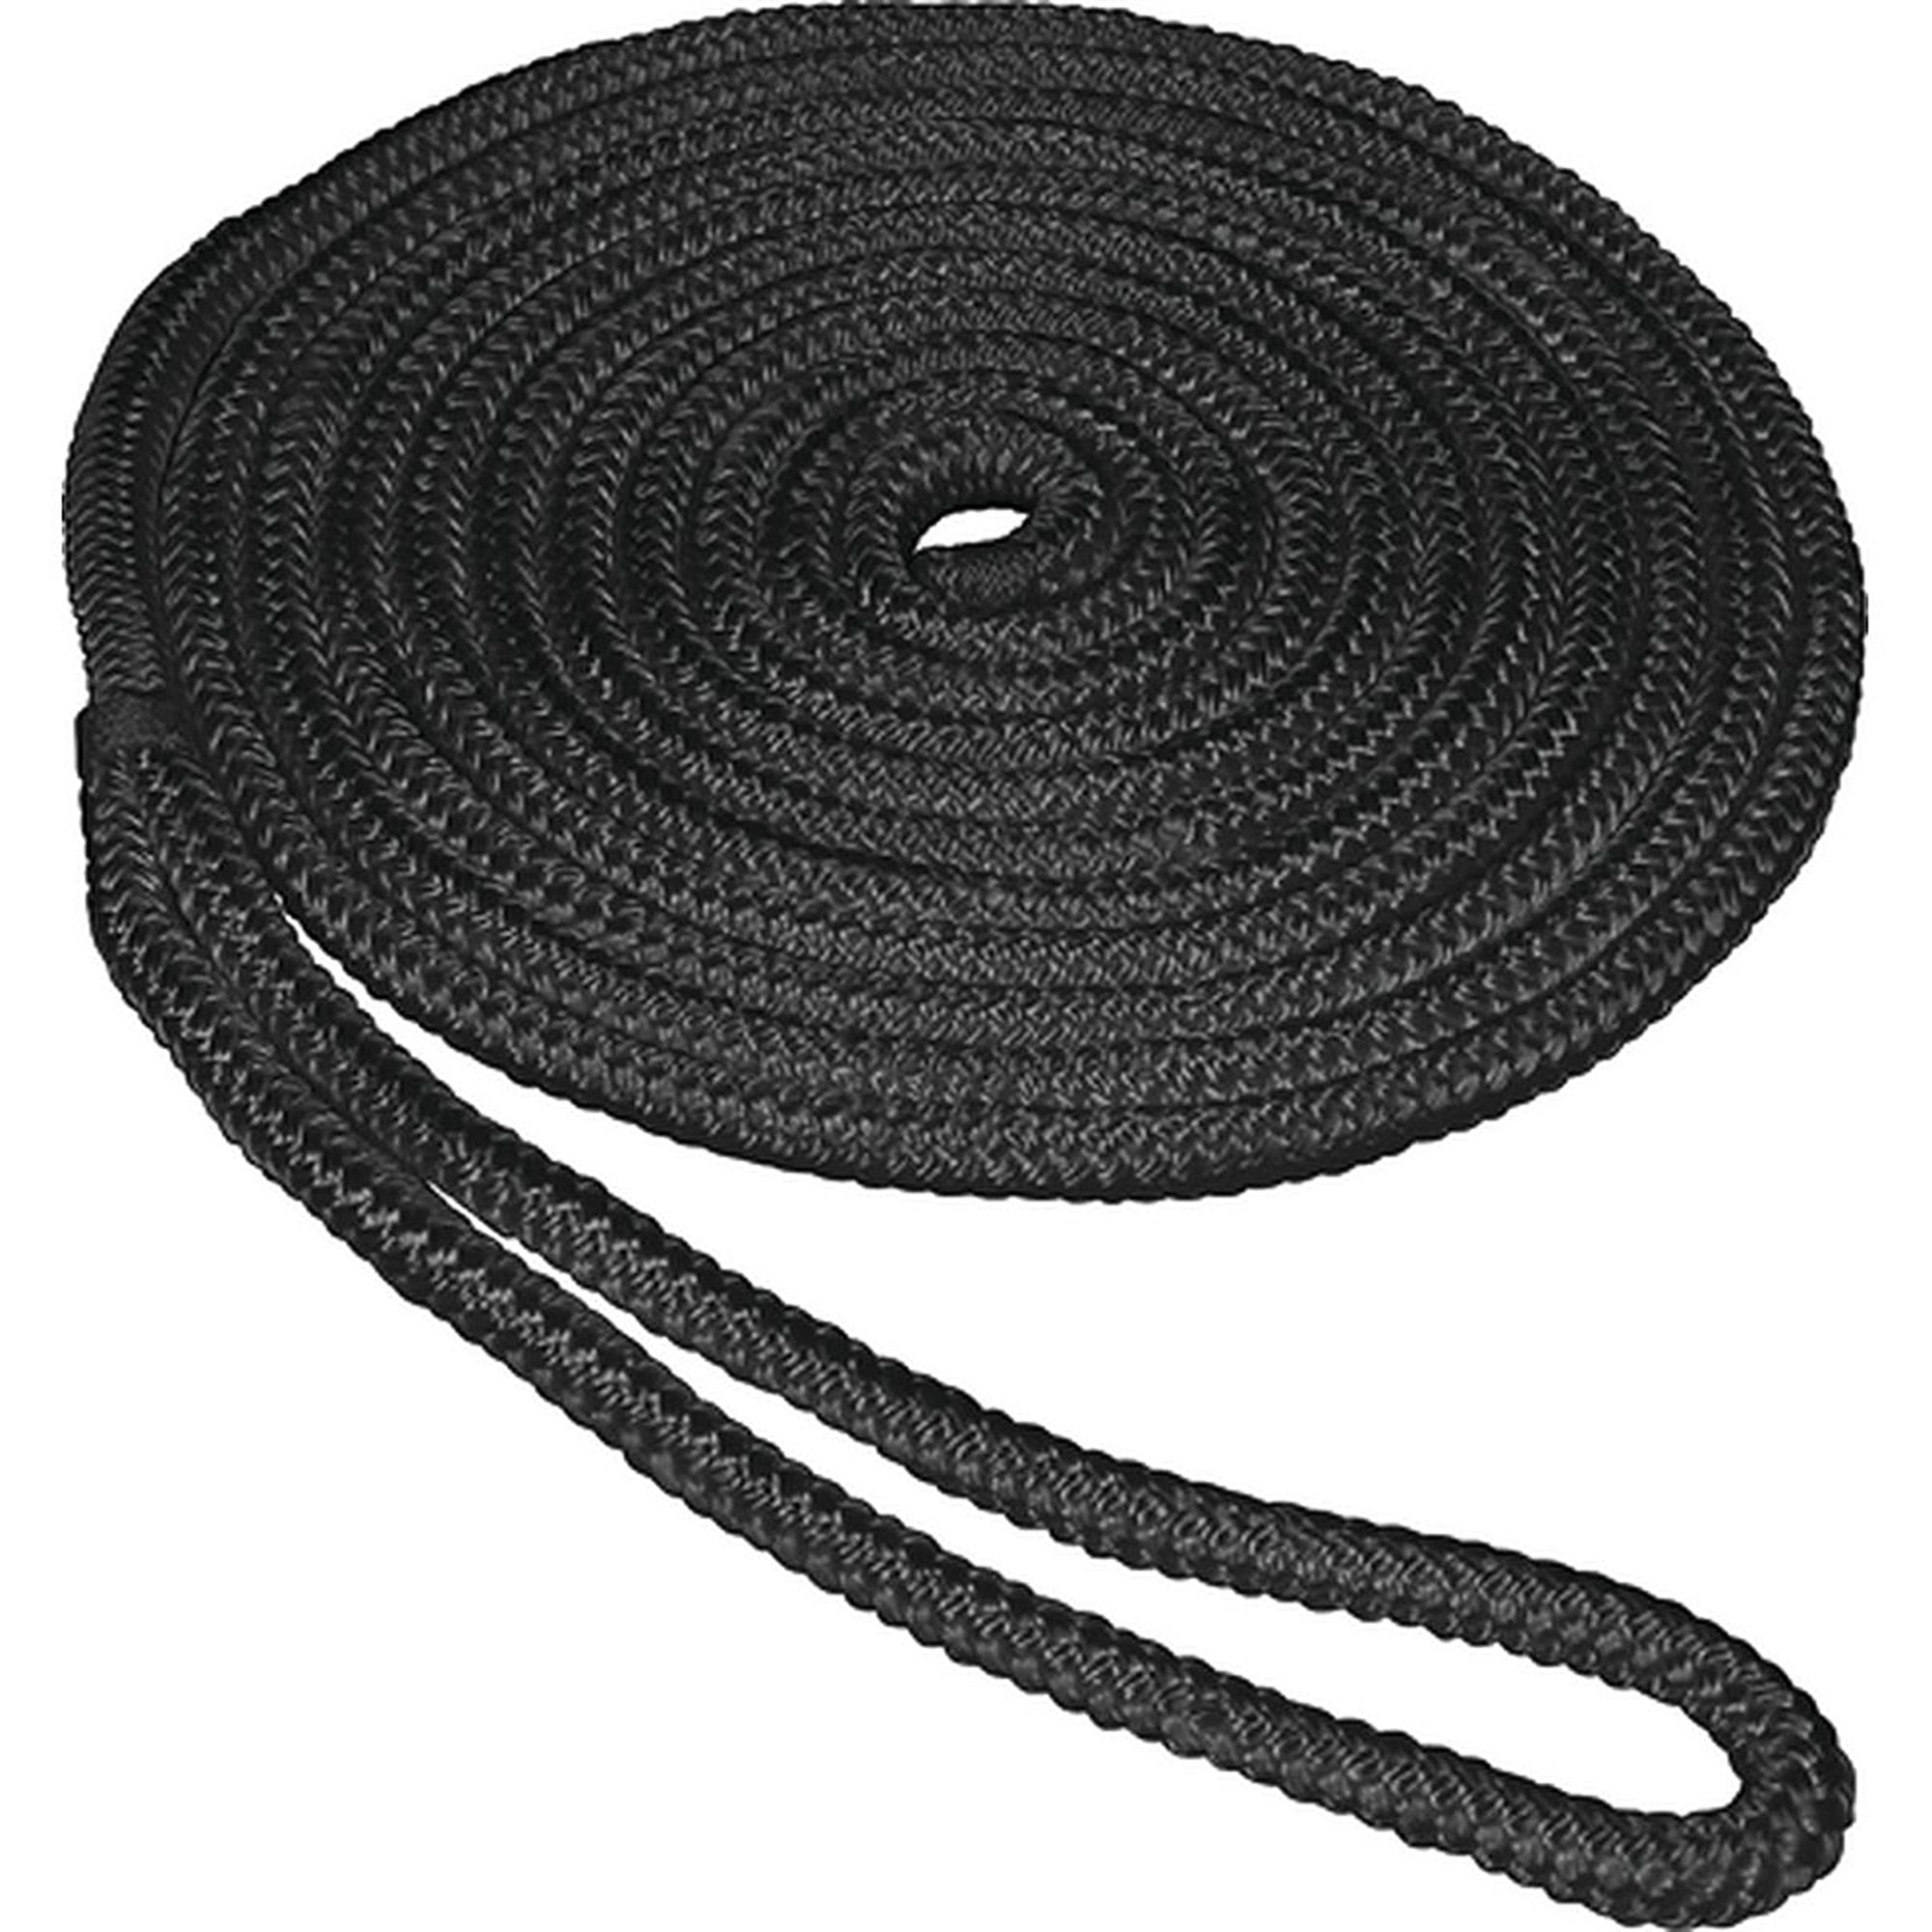 "Click here to buy SeaSense Double Braid Nylon Dock Line, 3 8"" x 25', 10"" Eye, Black by Generic."